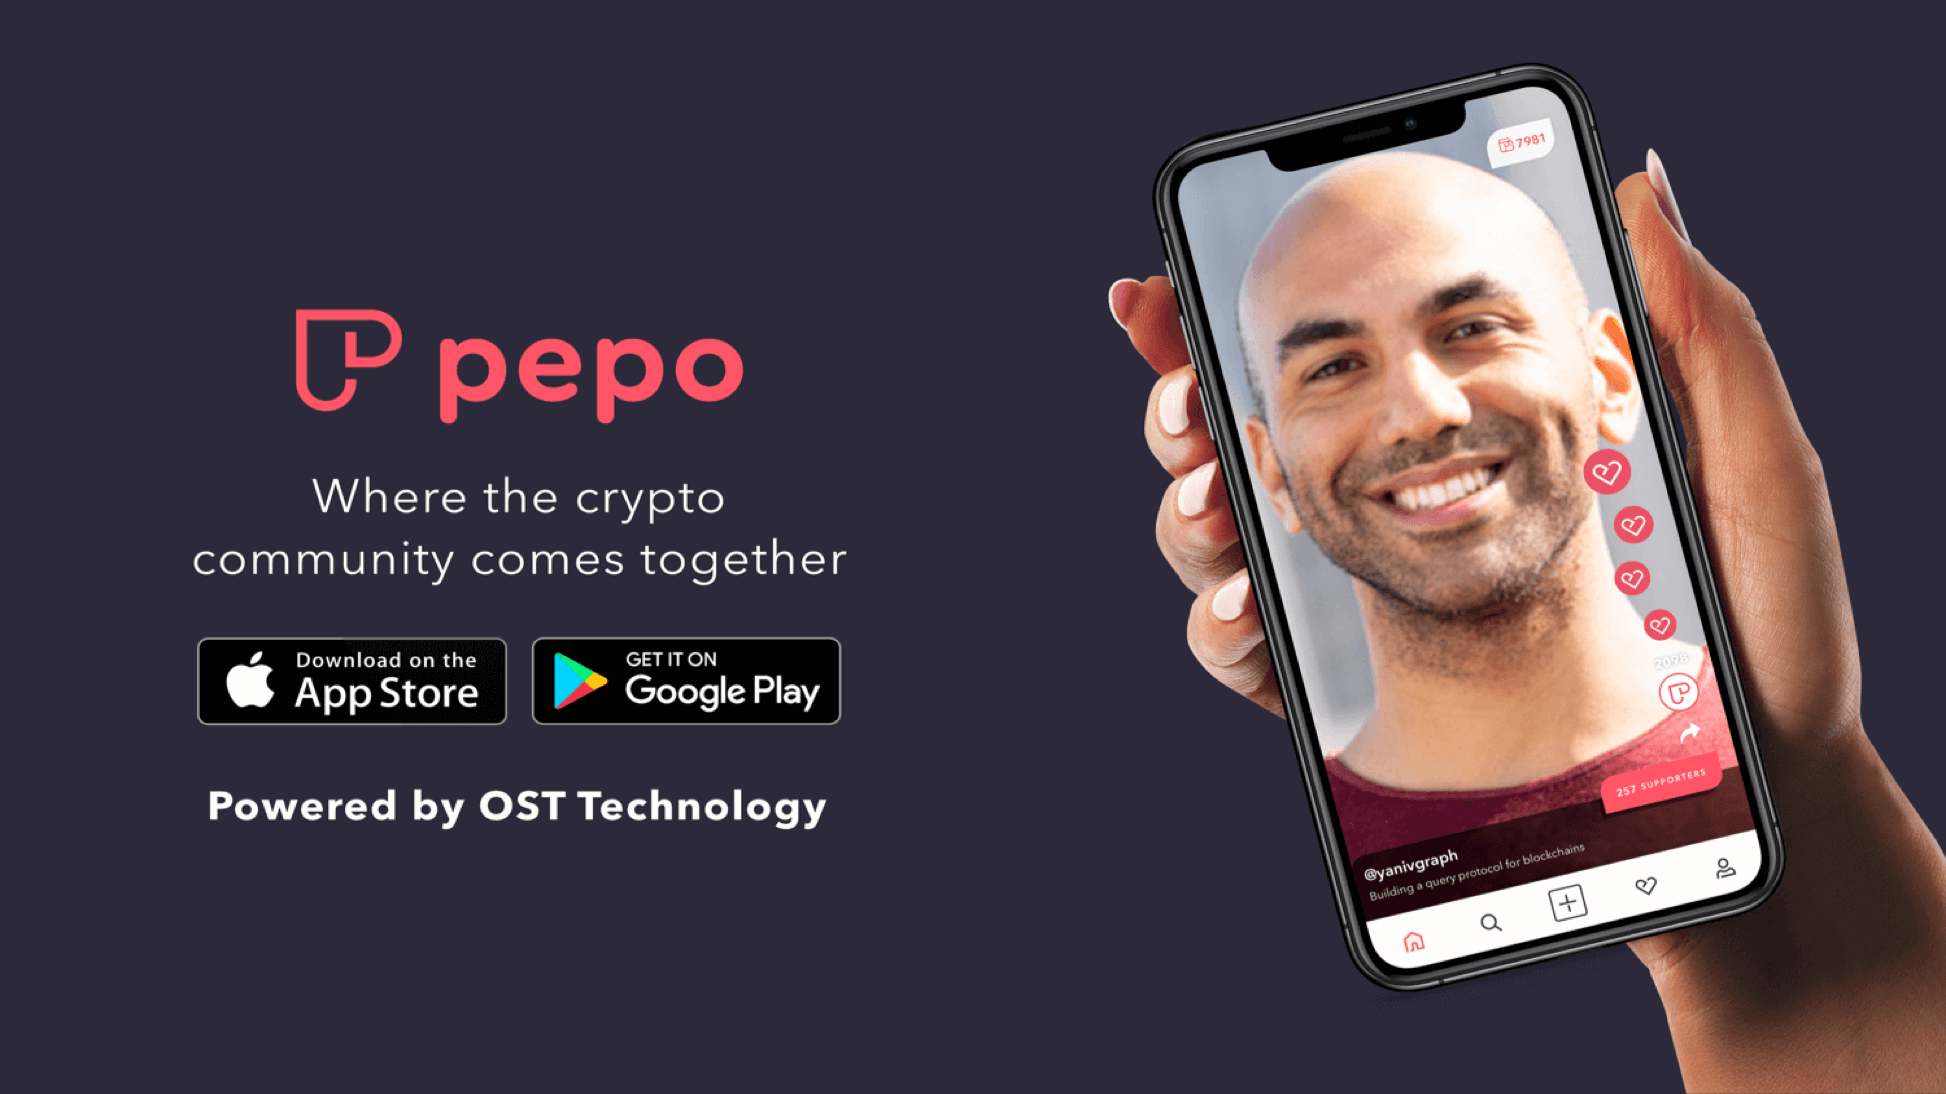 OST technology powers Pepo: The social app for the crypto community